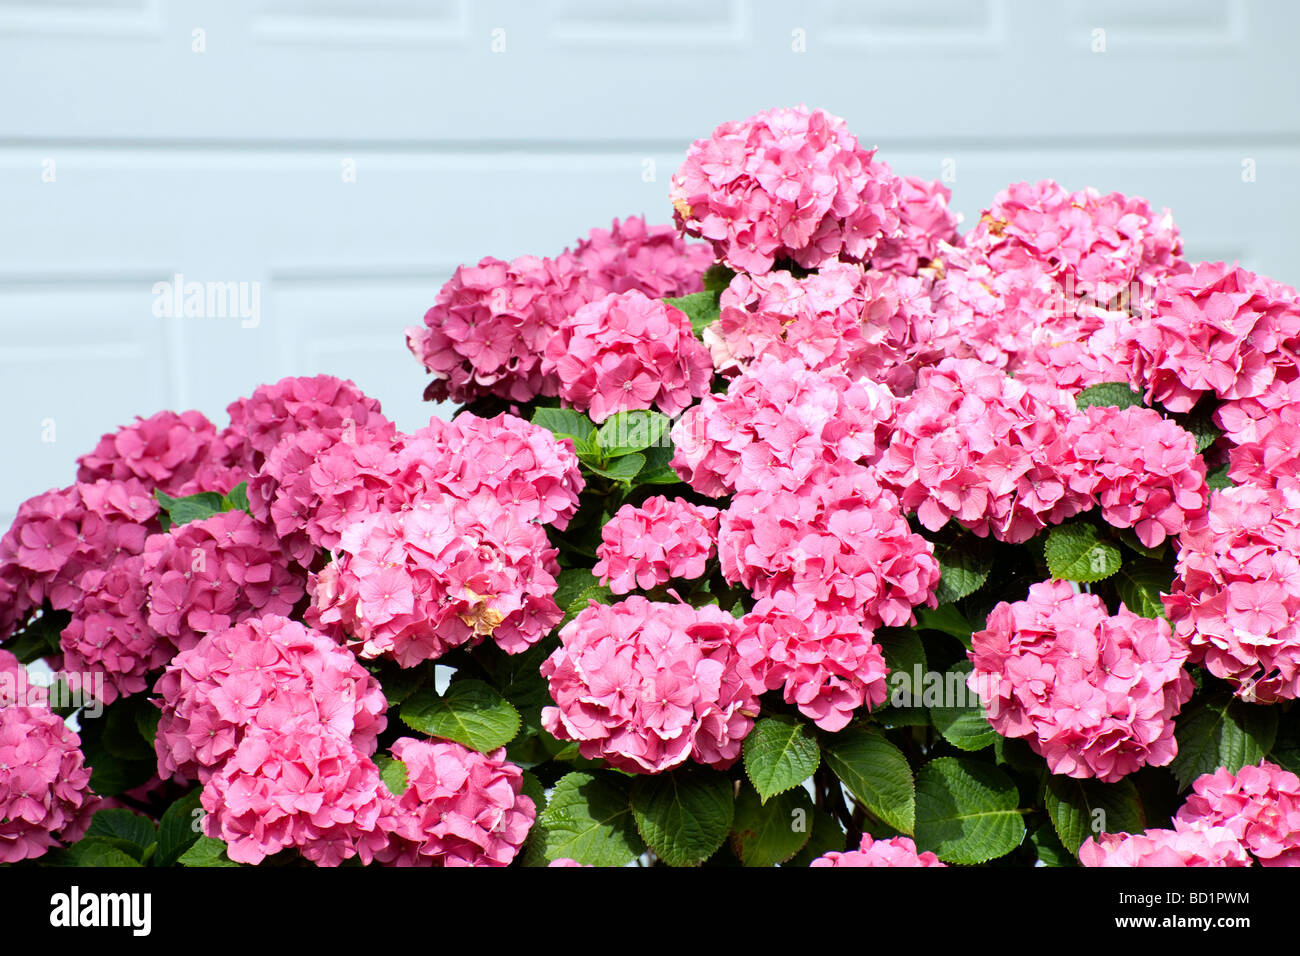 Pink Hydrangea in garden of suburban house - Stock Image